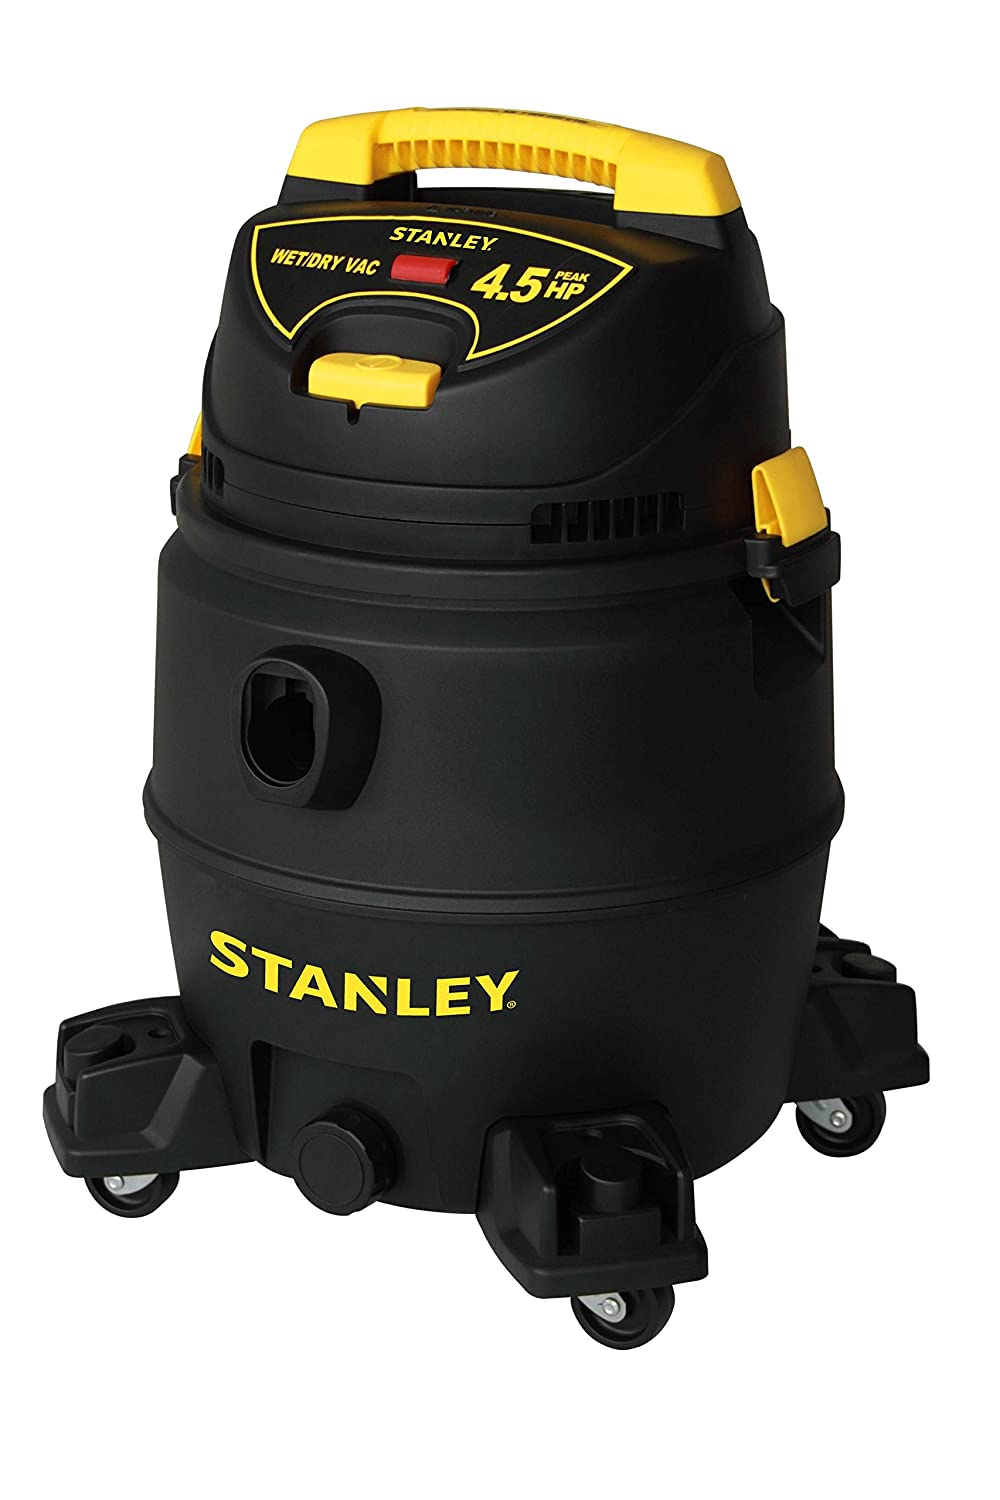 Stanley Wet Dry Vacuum, 8 Gallon, 4.5 Horsepower